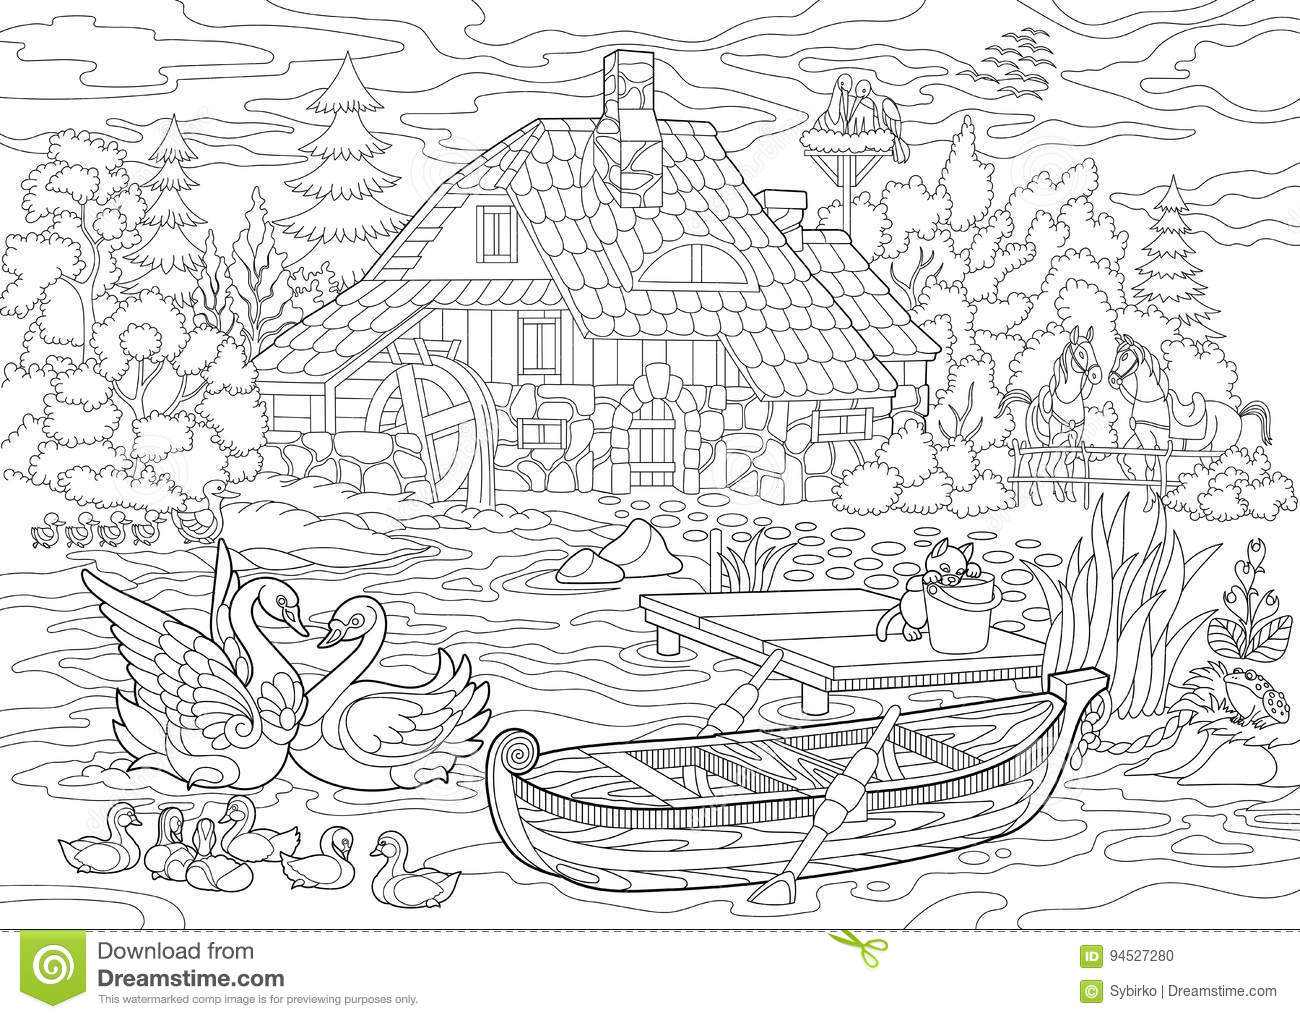 Coloring Book Page Of Rural Landscape Farm House Ducks Kitten Swans Horses Frog Storks Flock Seagulls Freehand Drawing For Adult Antistress